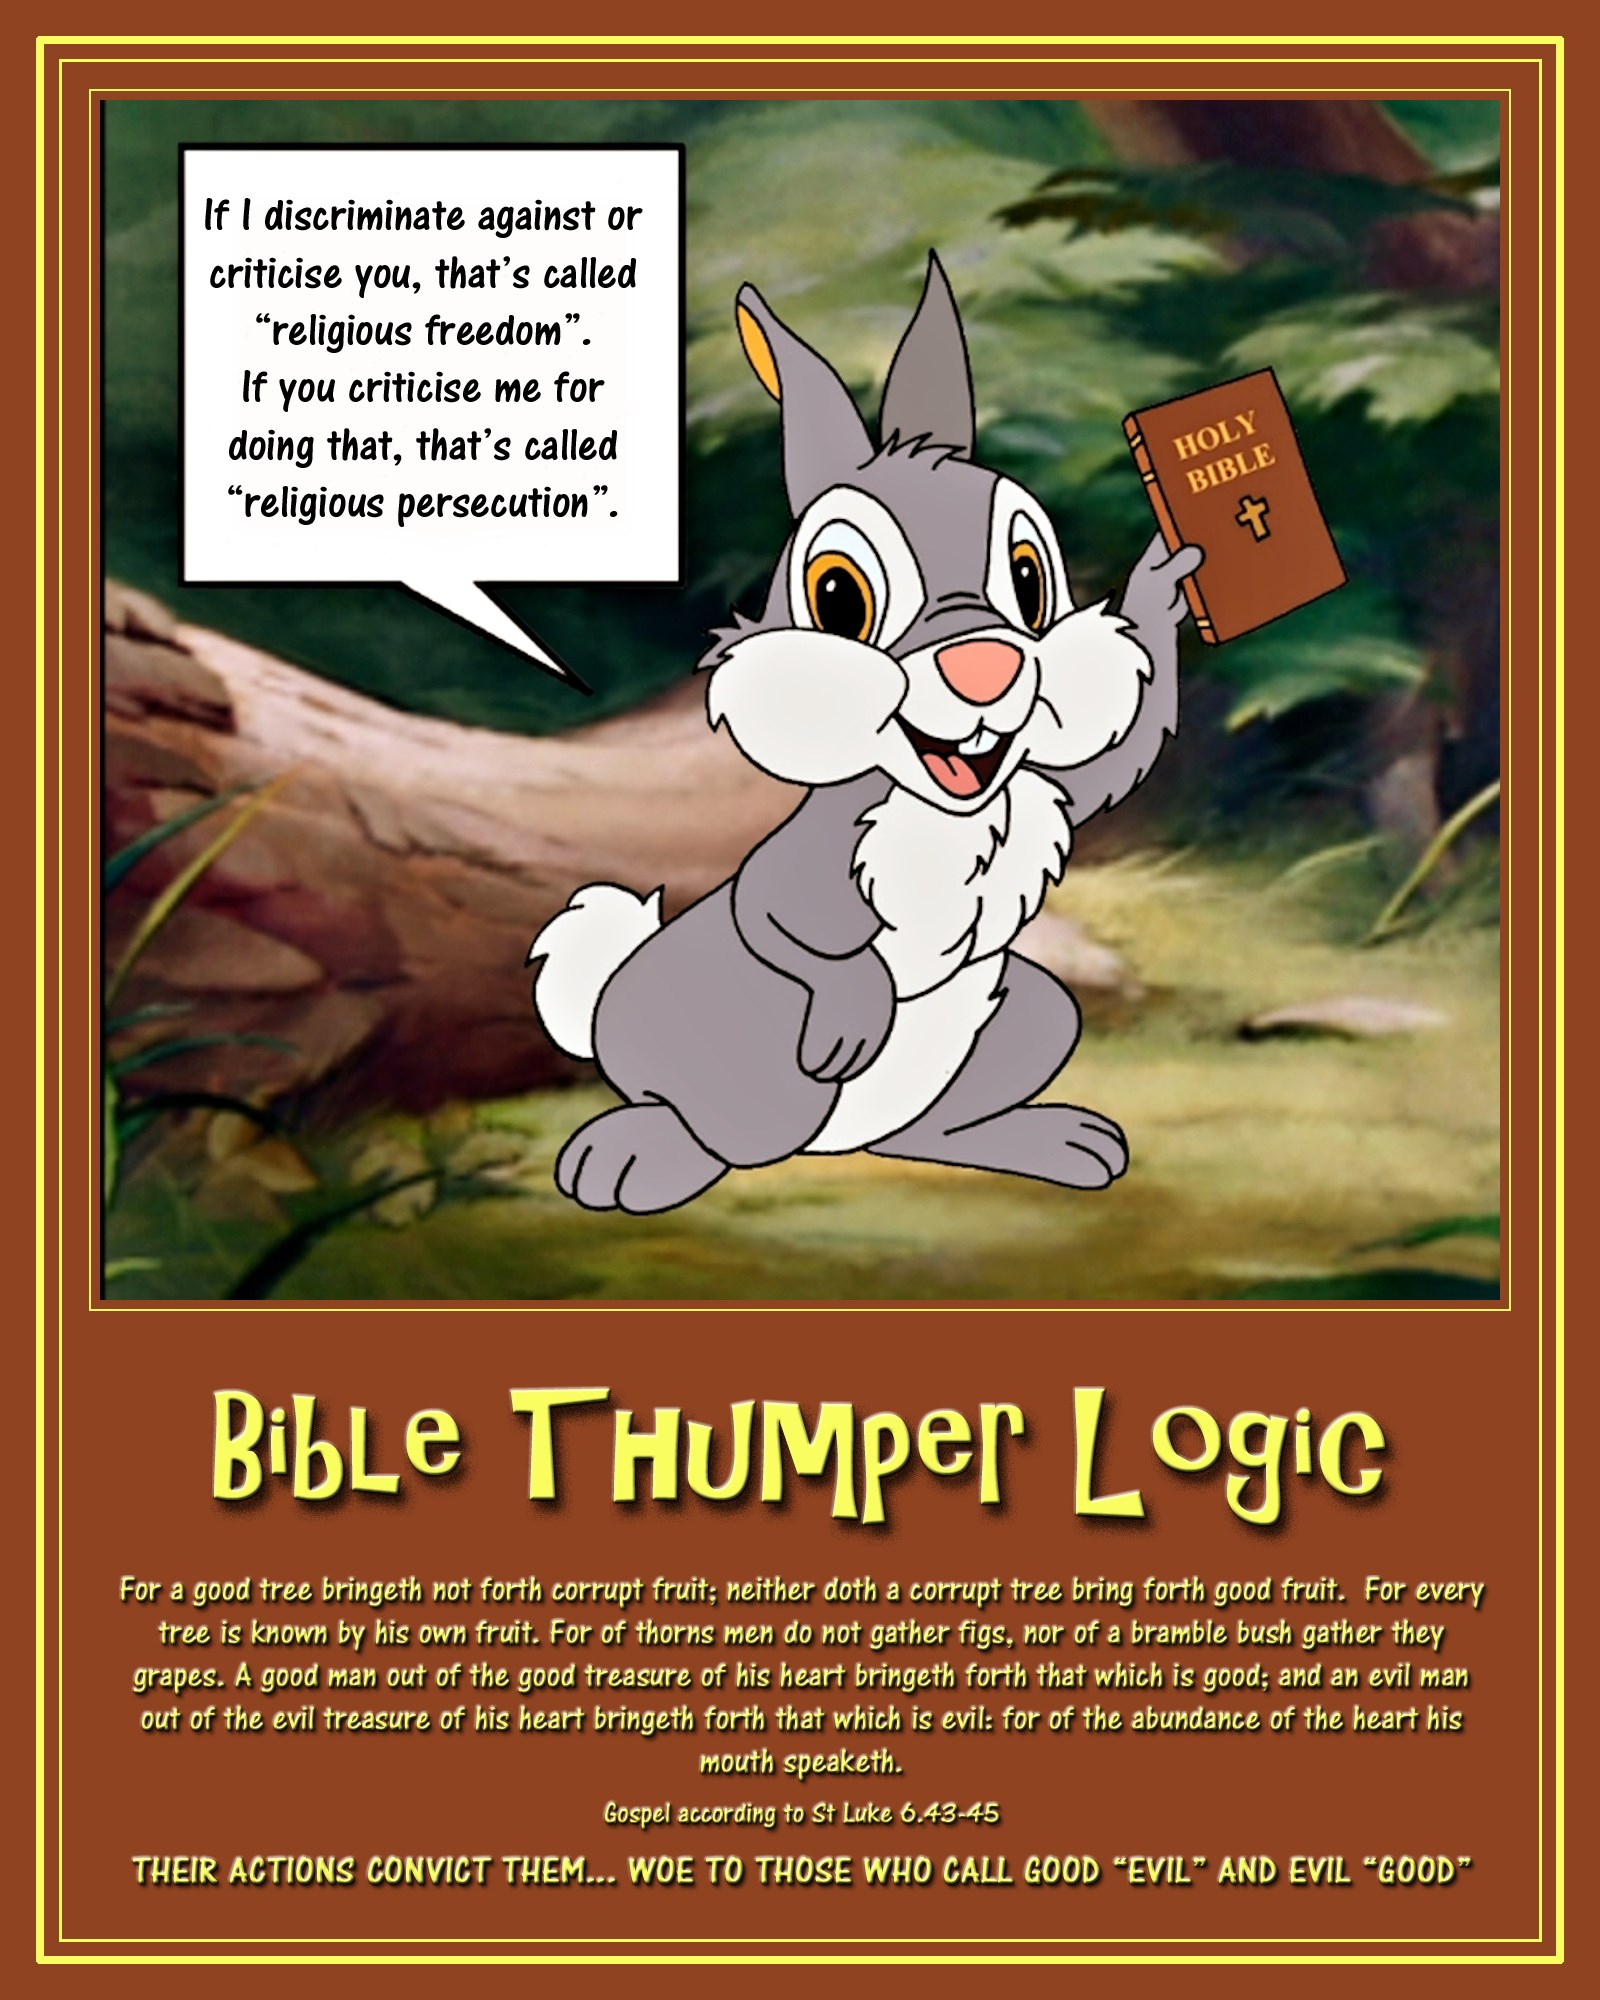 00 Bible Thumper. 02.04.15